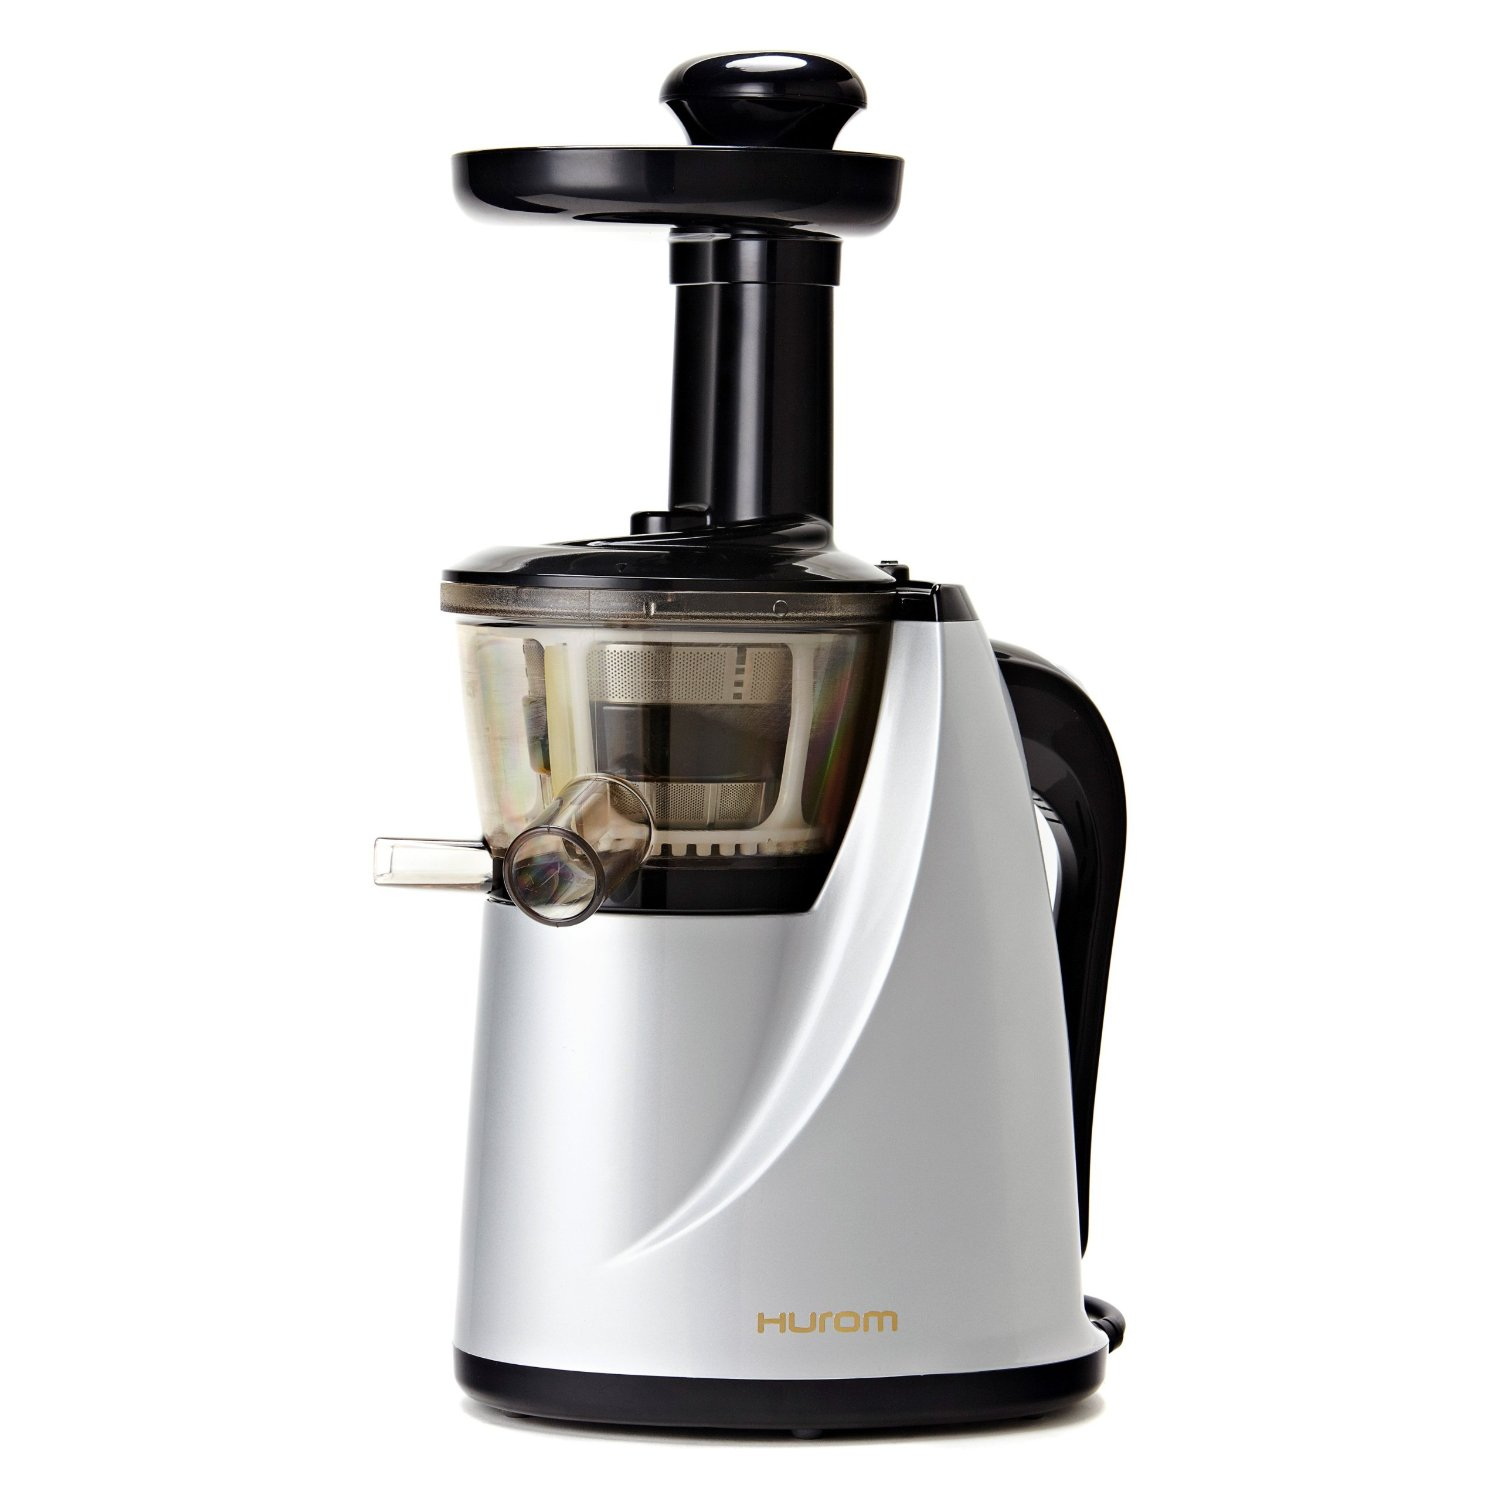 Hurom Slow Juicer Hq Series : Hurom HU-100 Masticating Slow Juicer Review - Best Cold Press Juicers